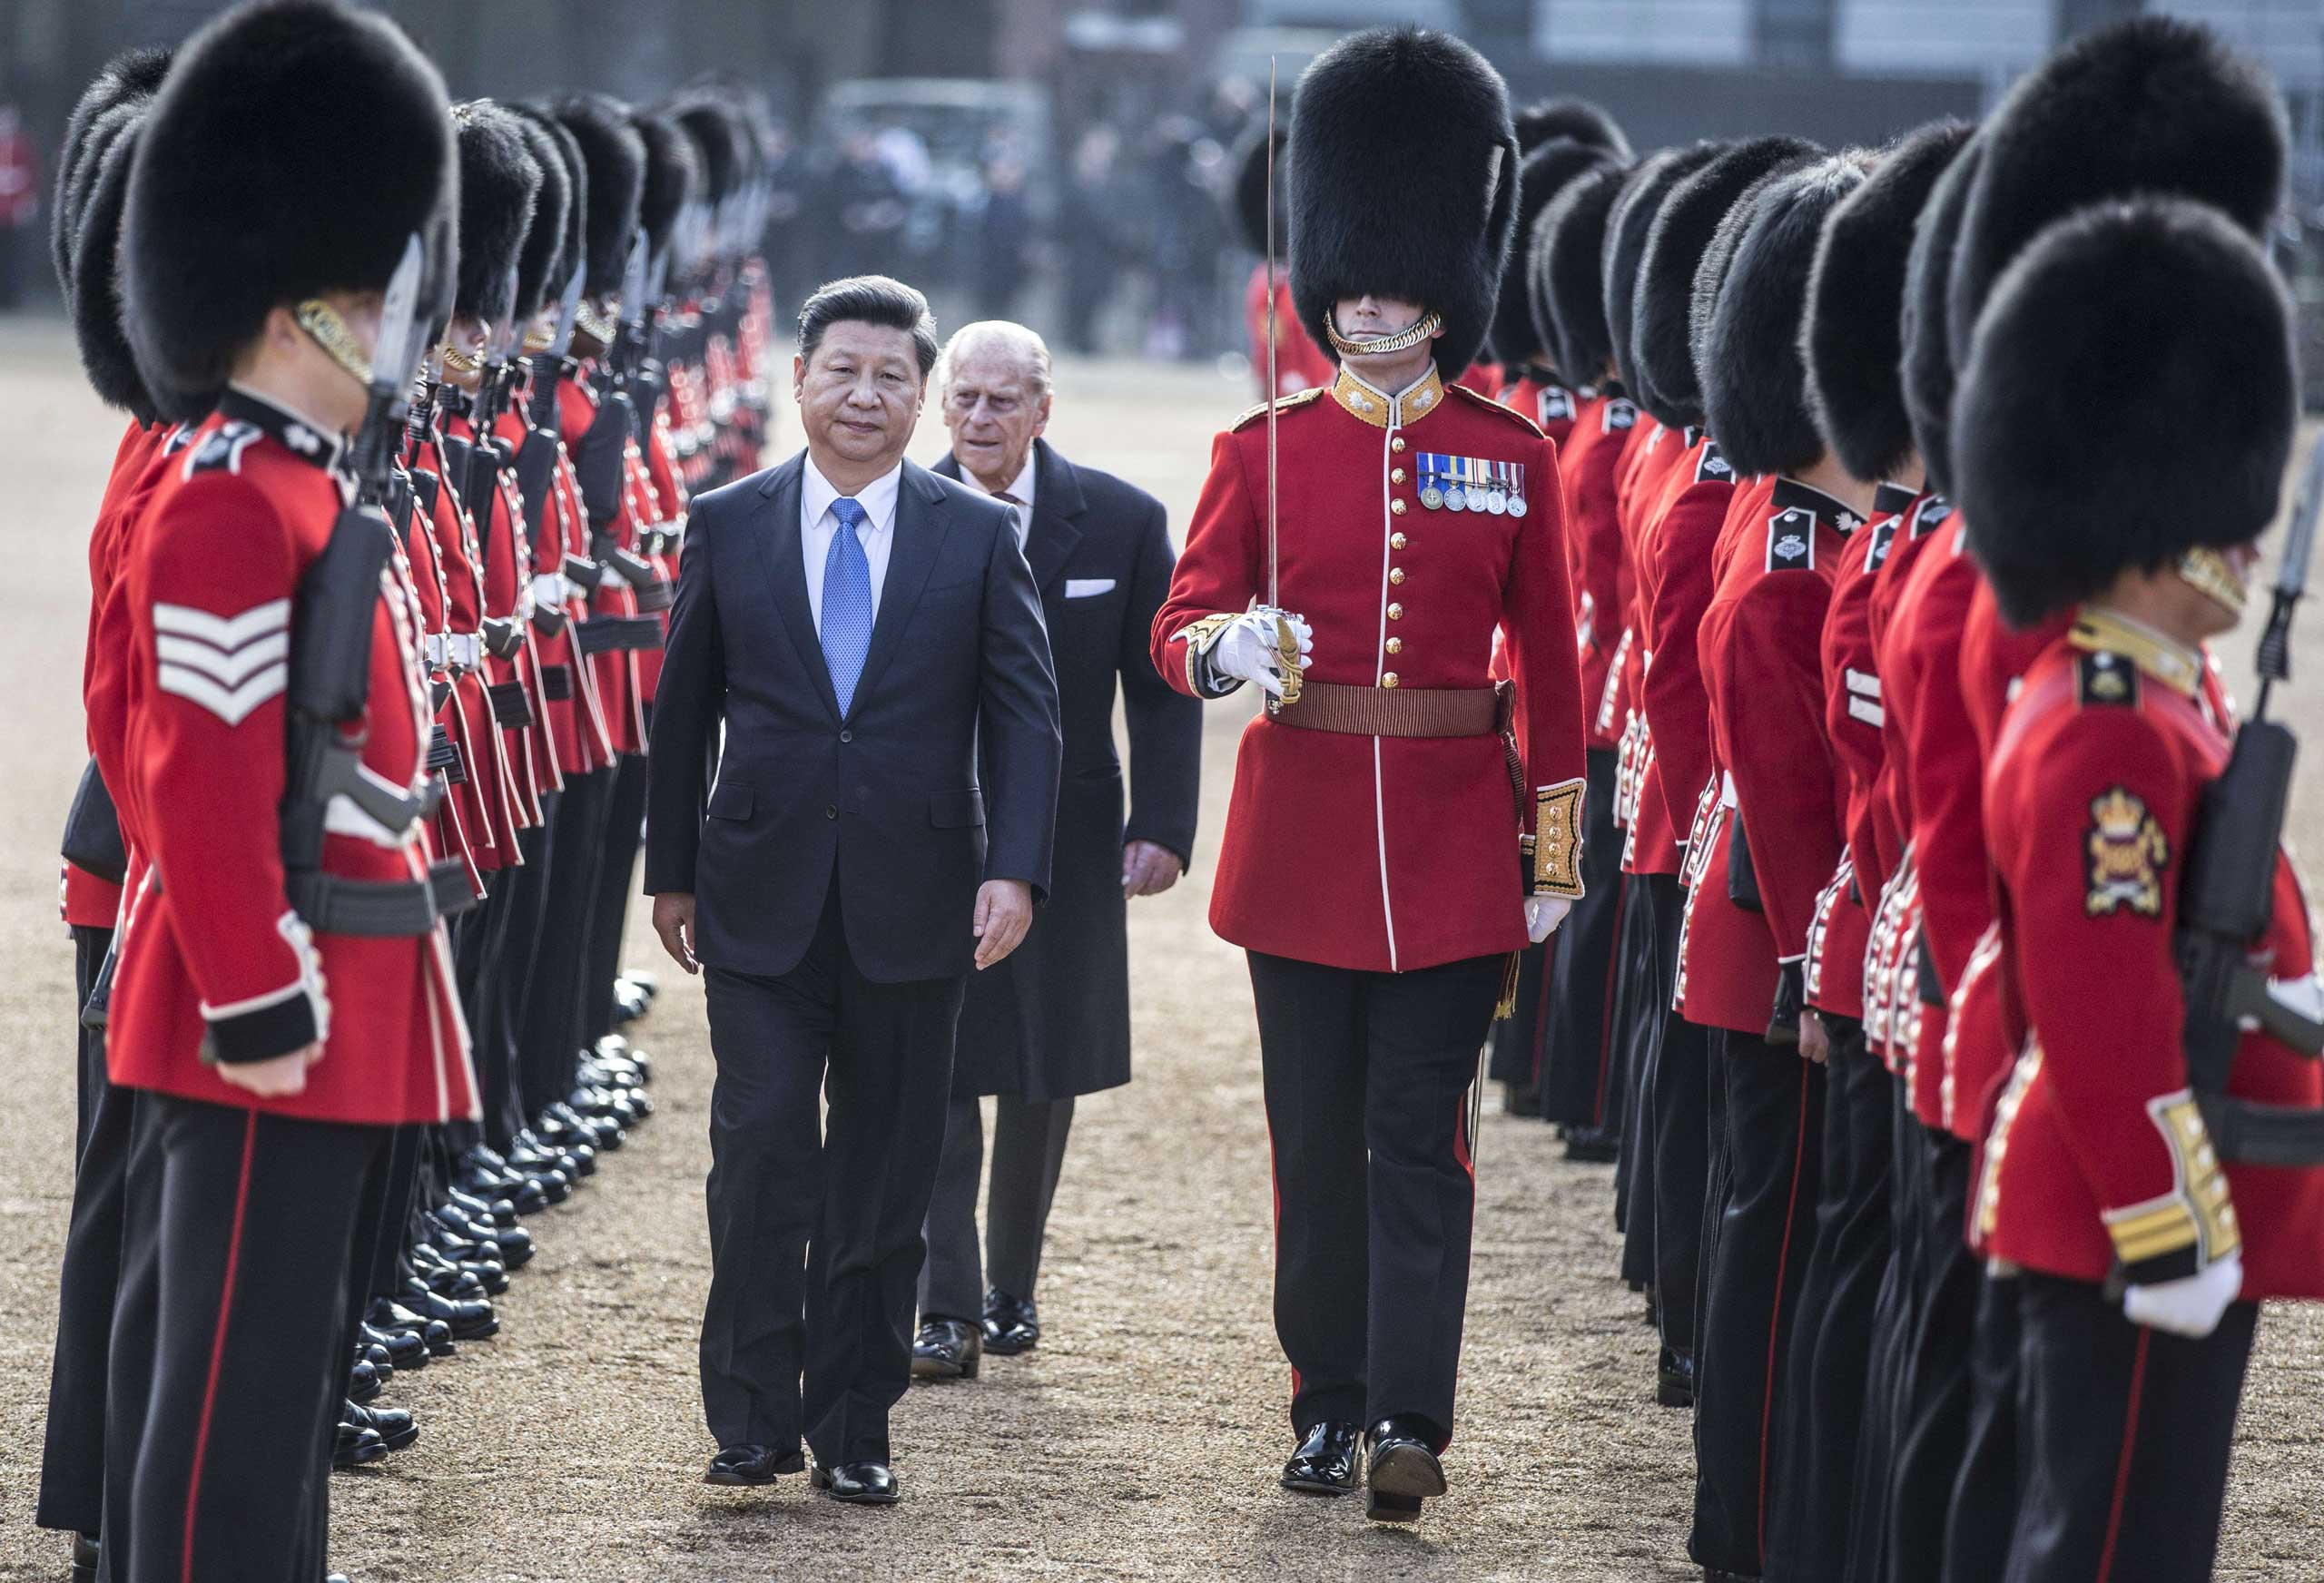 President Xi Jinping and Britain's Prince Philip, Duke of Edinburgh inspect the guard of honor on Horse Guards Parade in central London during the ceremonial welcome on the first official day of a state visit, on Oct. 20, 2015.